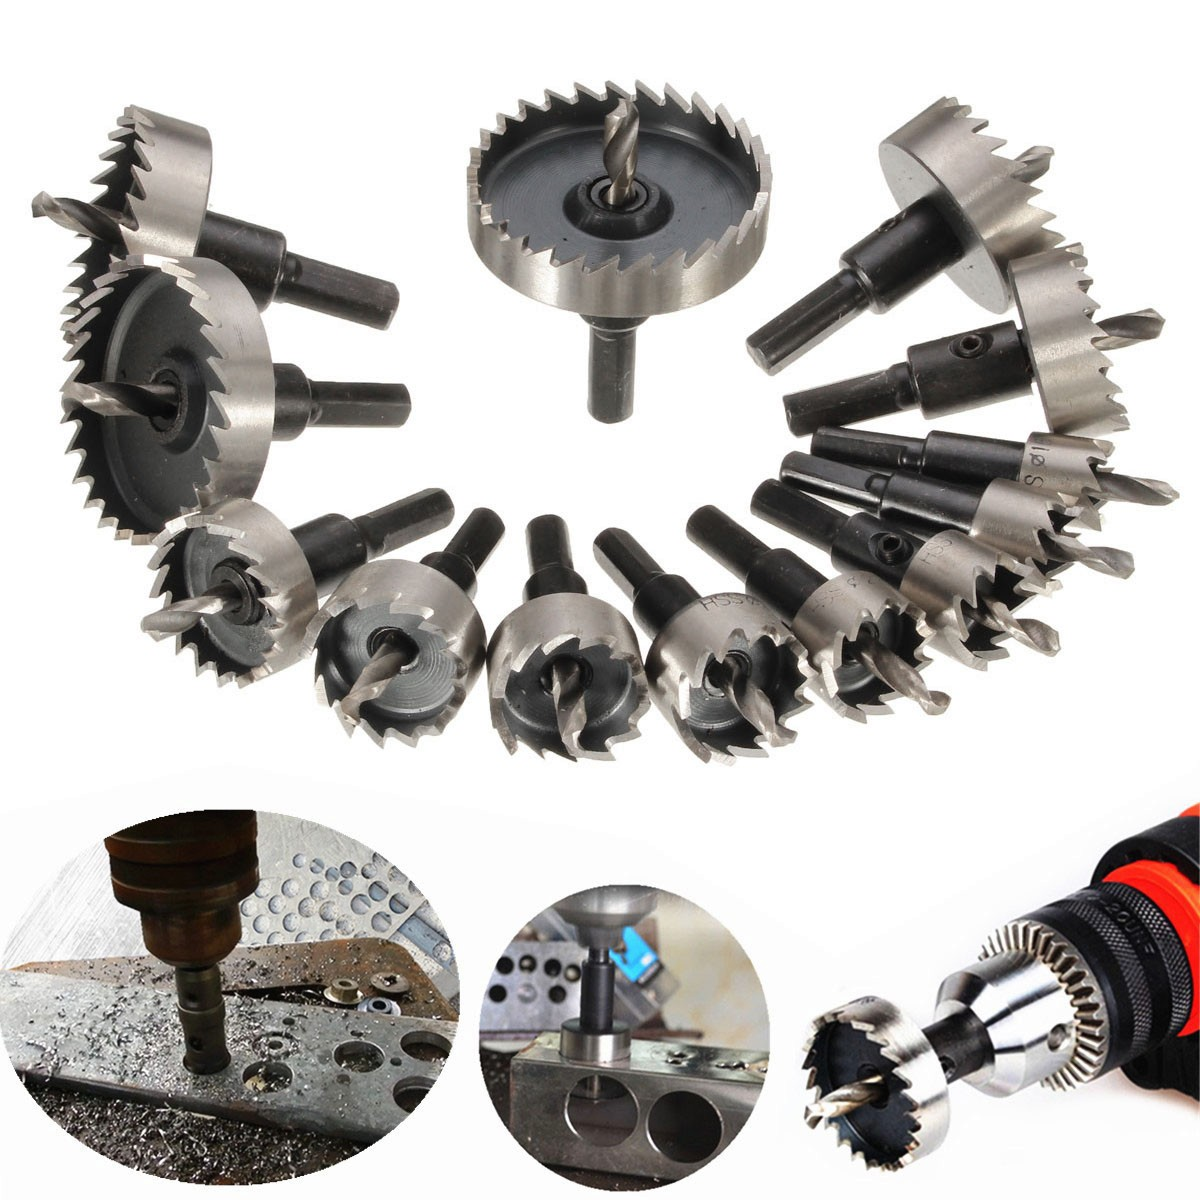 13pc Professional Hss Hole Saw Tooth Kit Hss Steel Drill Bit Set Cutter Tool For Metal Wood Alloy  5